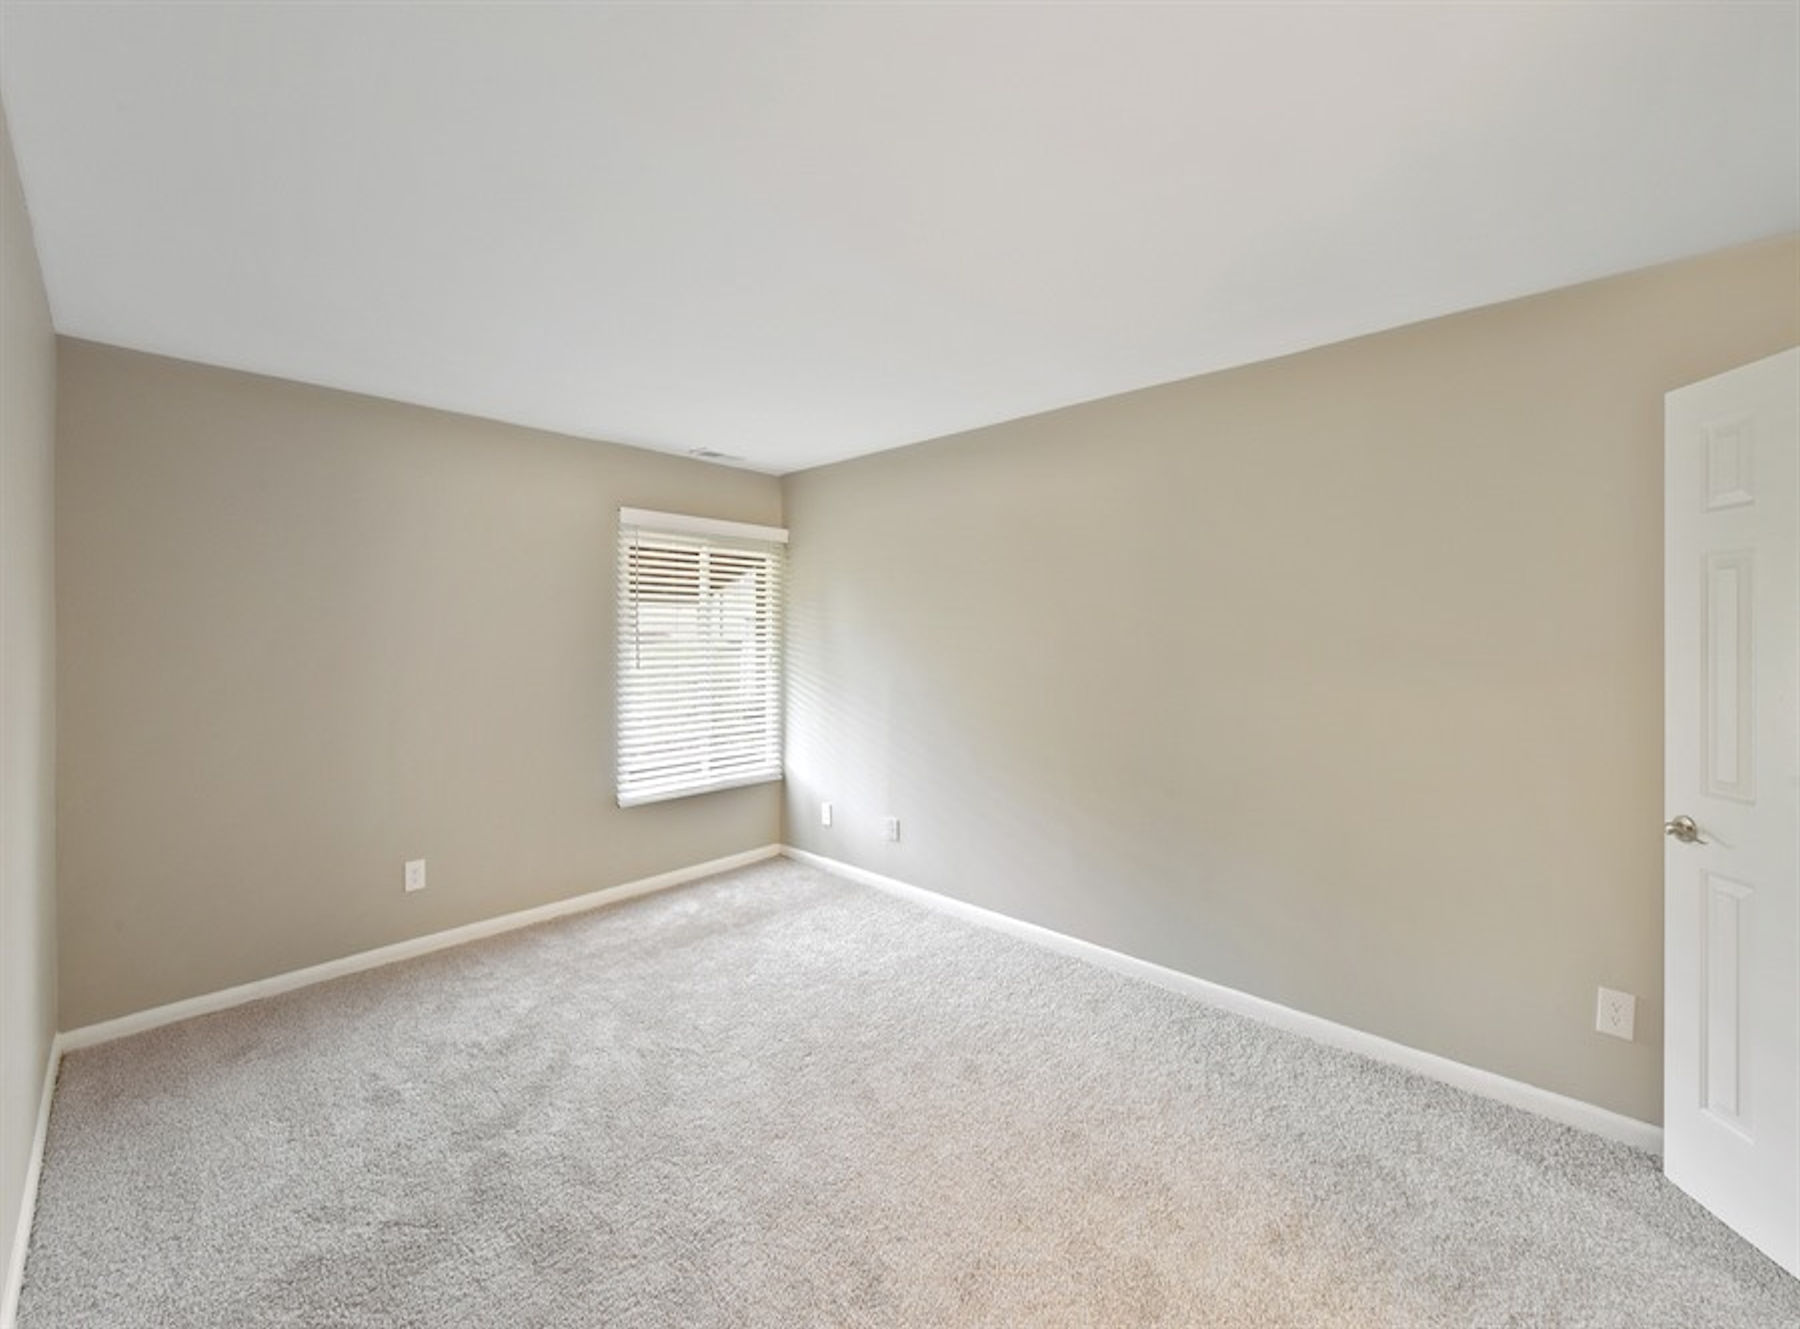 Model bedroom with large window, carpeting, and modern two tone paint.